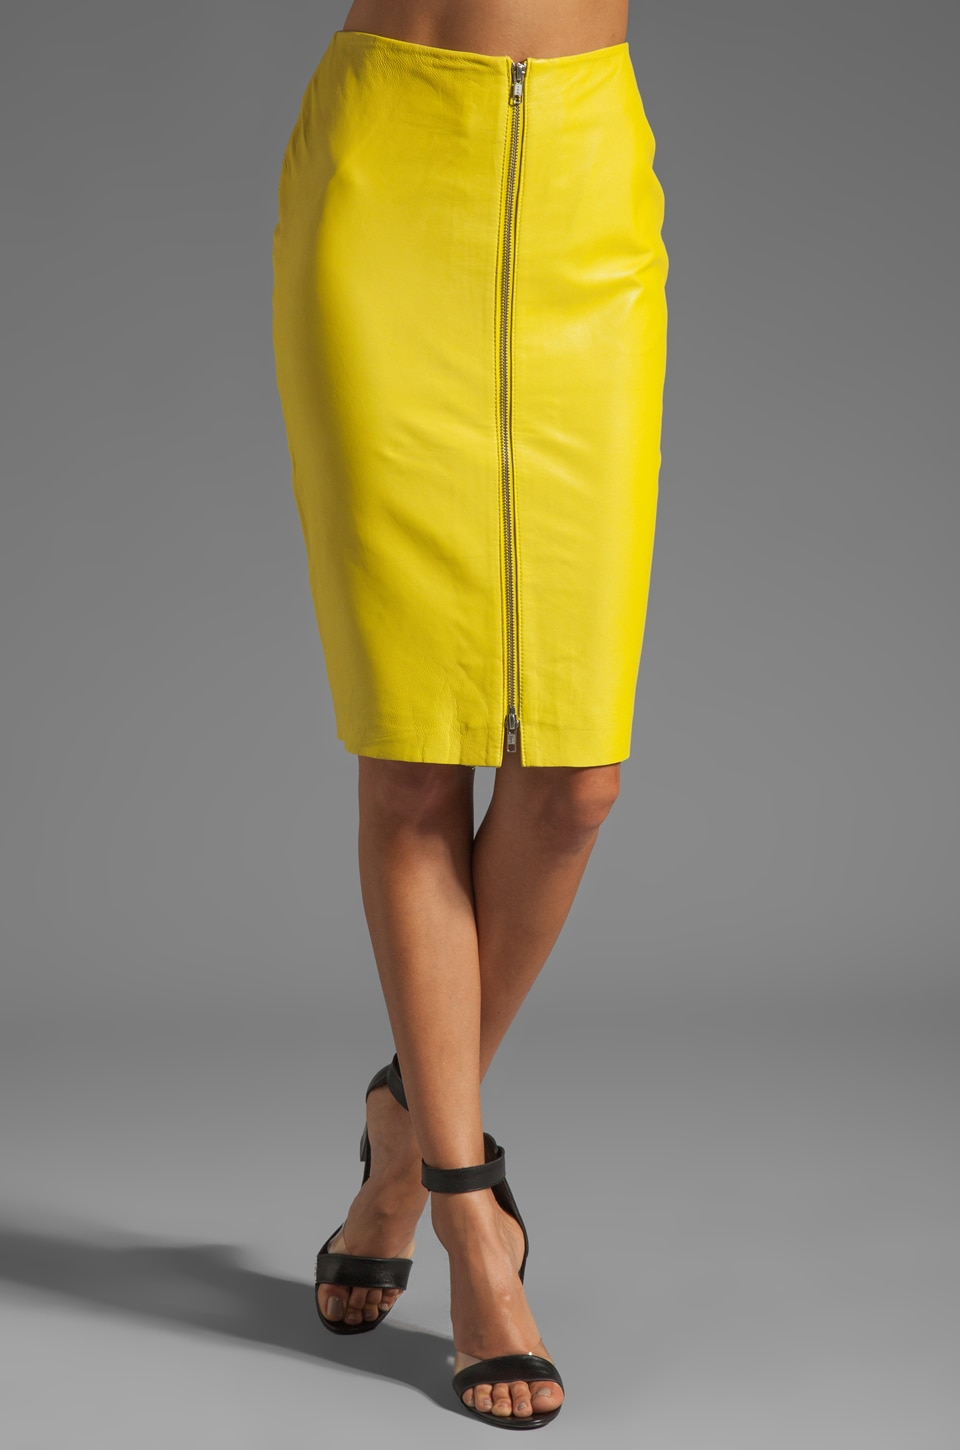 By Malene Birger Luxurious Leather Pencil Skirt in Neon Yellow